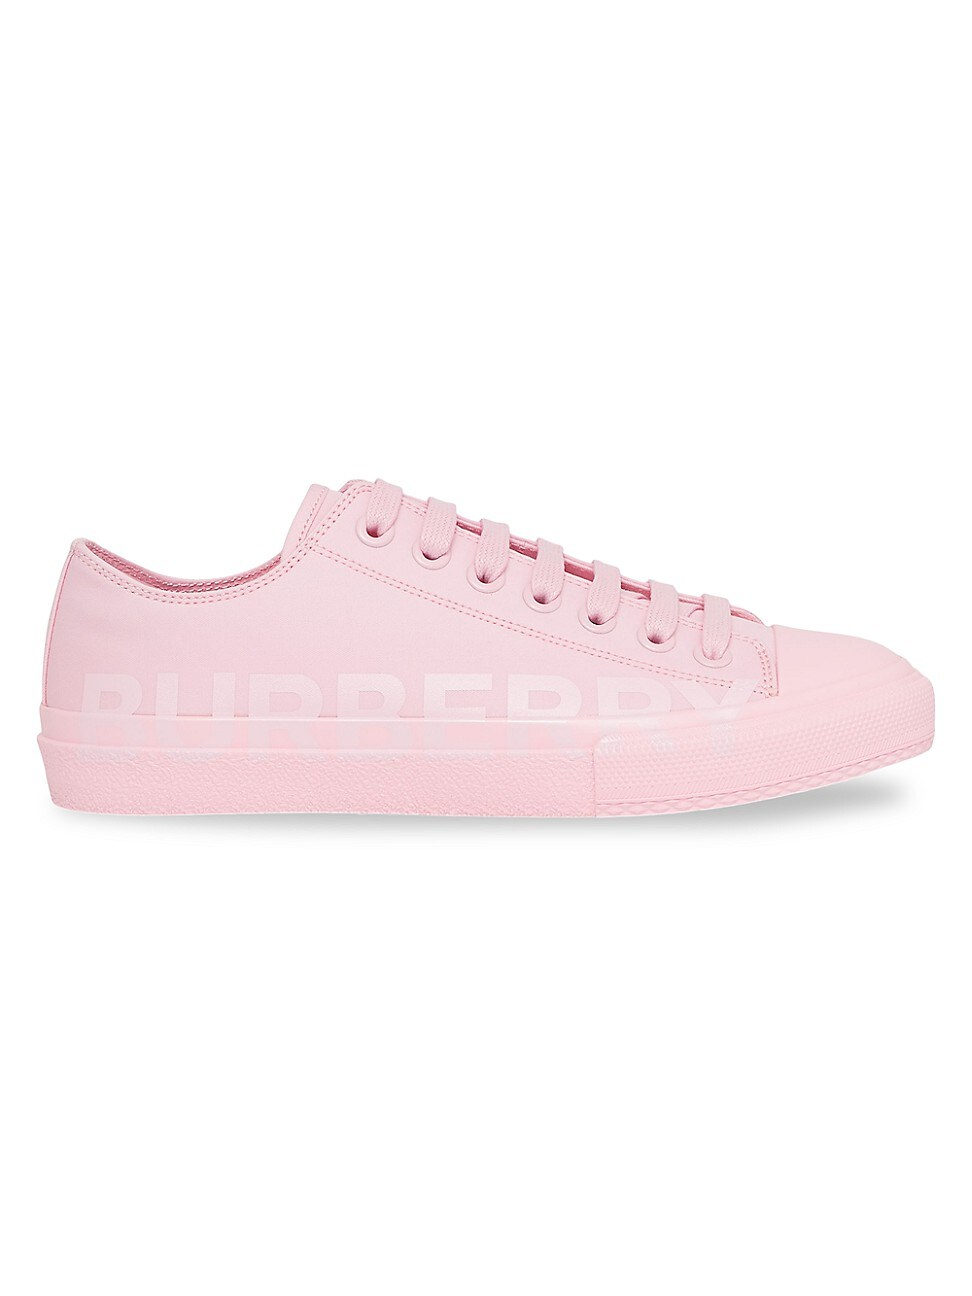 Burberry Shoes WOMEN'S LARKHALL CANVAS SNEAKERS